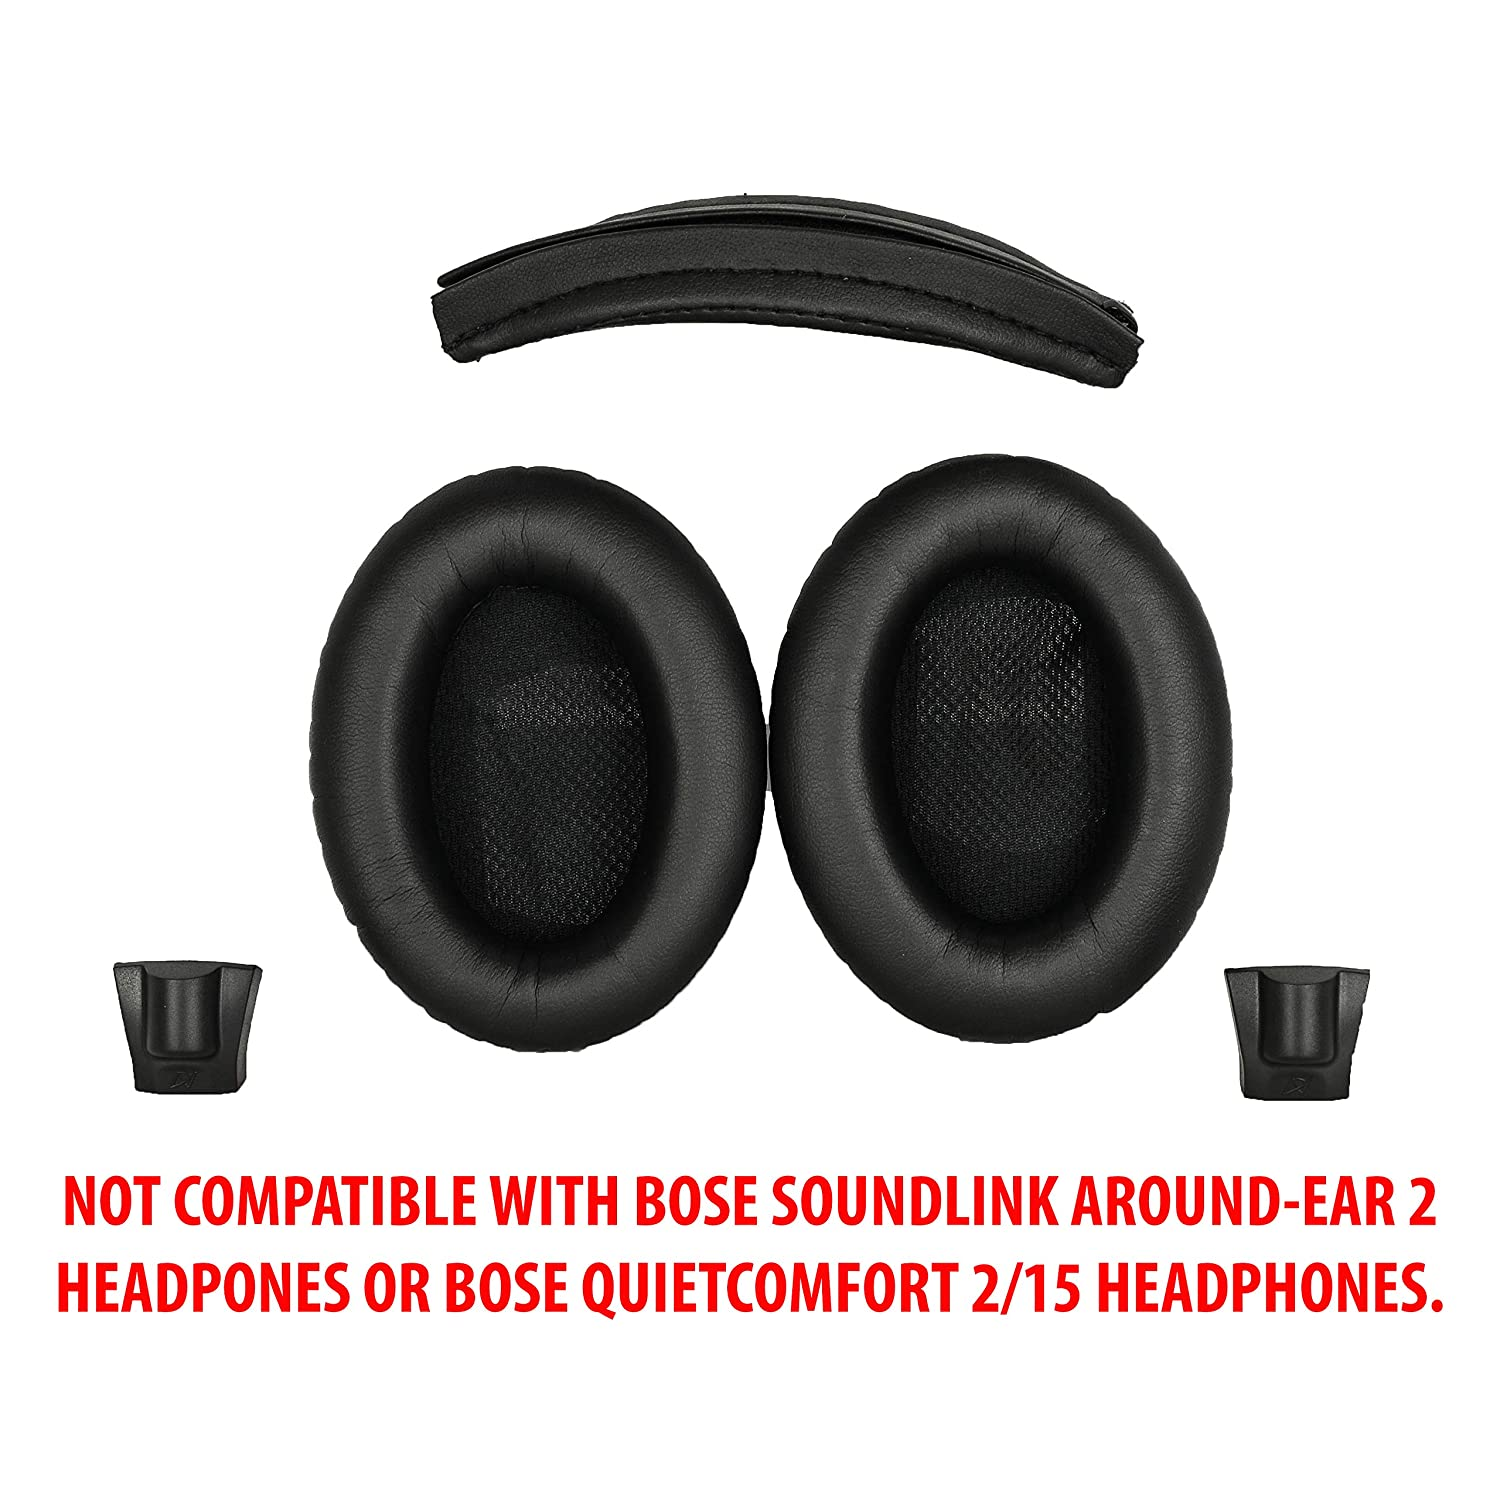 f2efb468b16 Replacement Ear pads and Headband Cushion pad for Bose Around-Ear 2 (AE2),  Around-Ear 2 Wireless (AE2w) and SoundTrue Around-Ear (AE) headphones - NOT  ...